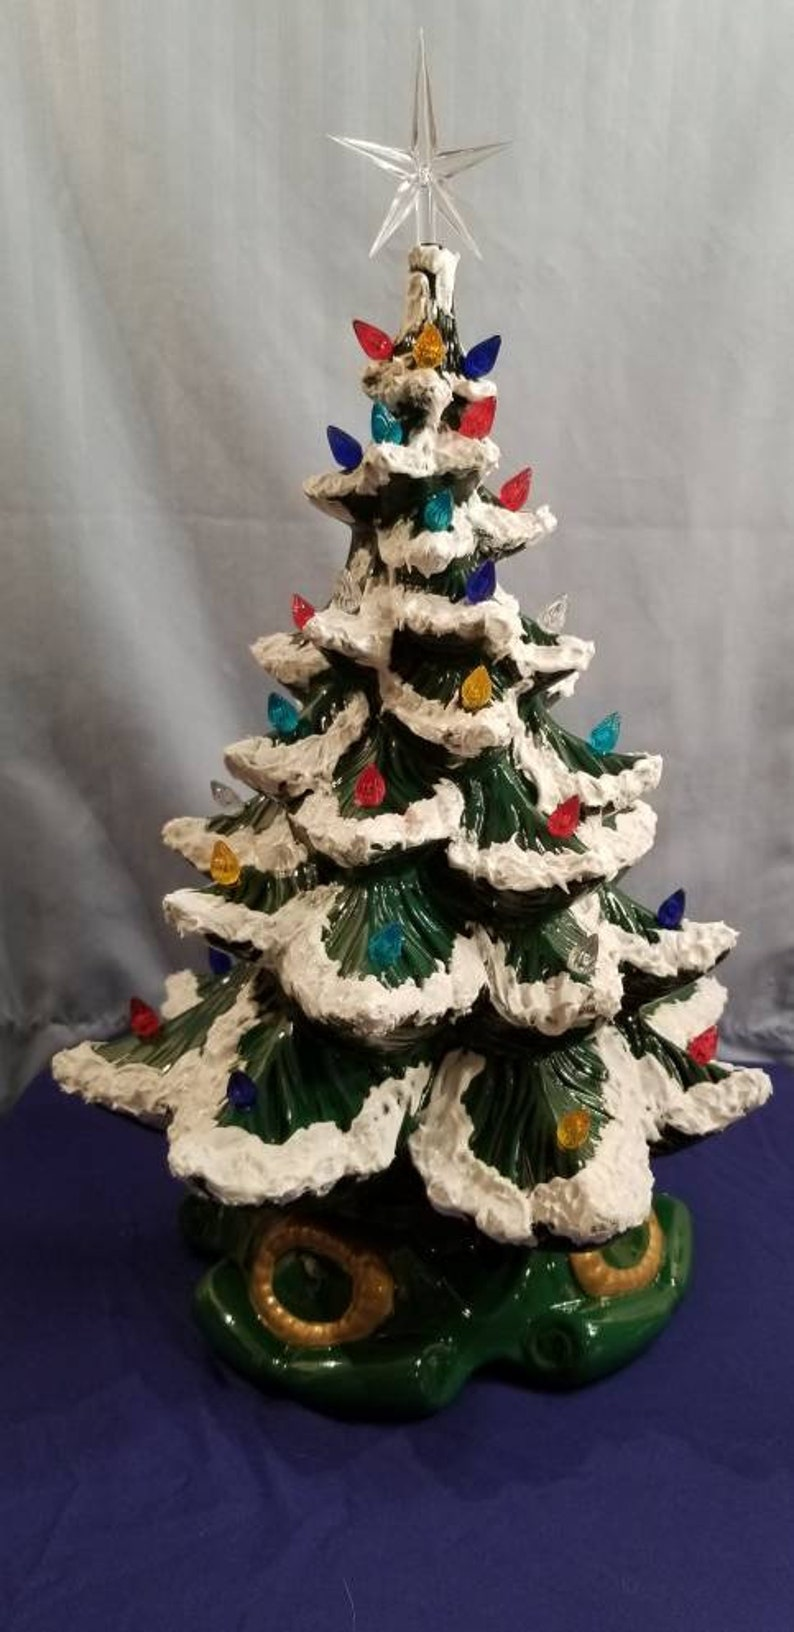 Vintage Ceramic Christmas Tree Limited Collection Available Customized Flocked Music Box Plays Jingle Bells Nostalgic